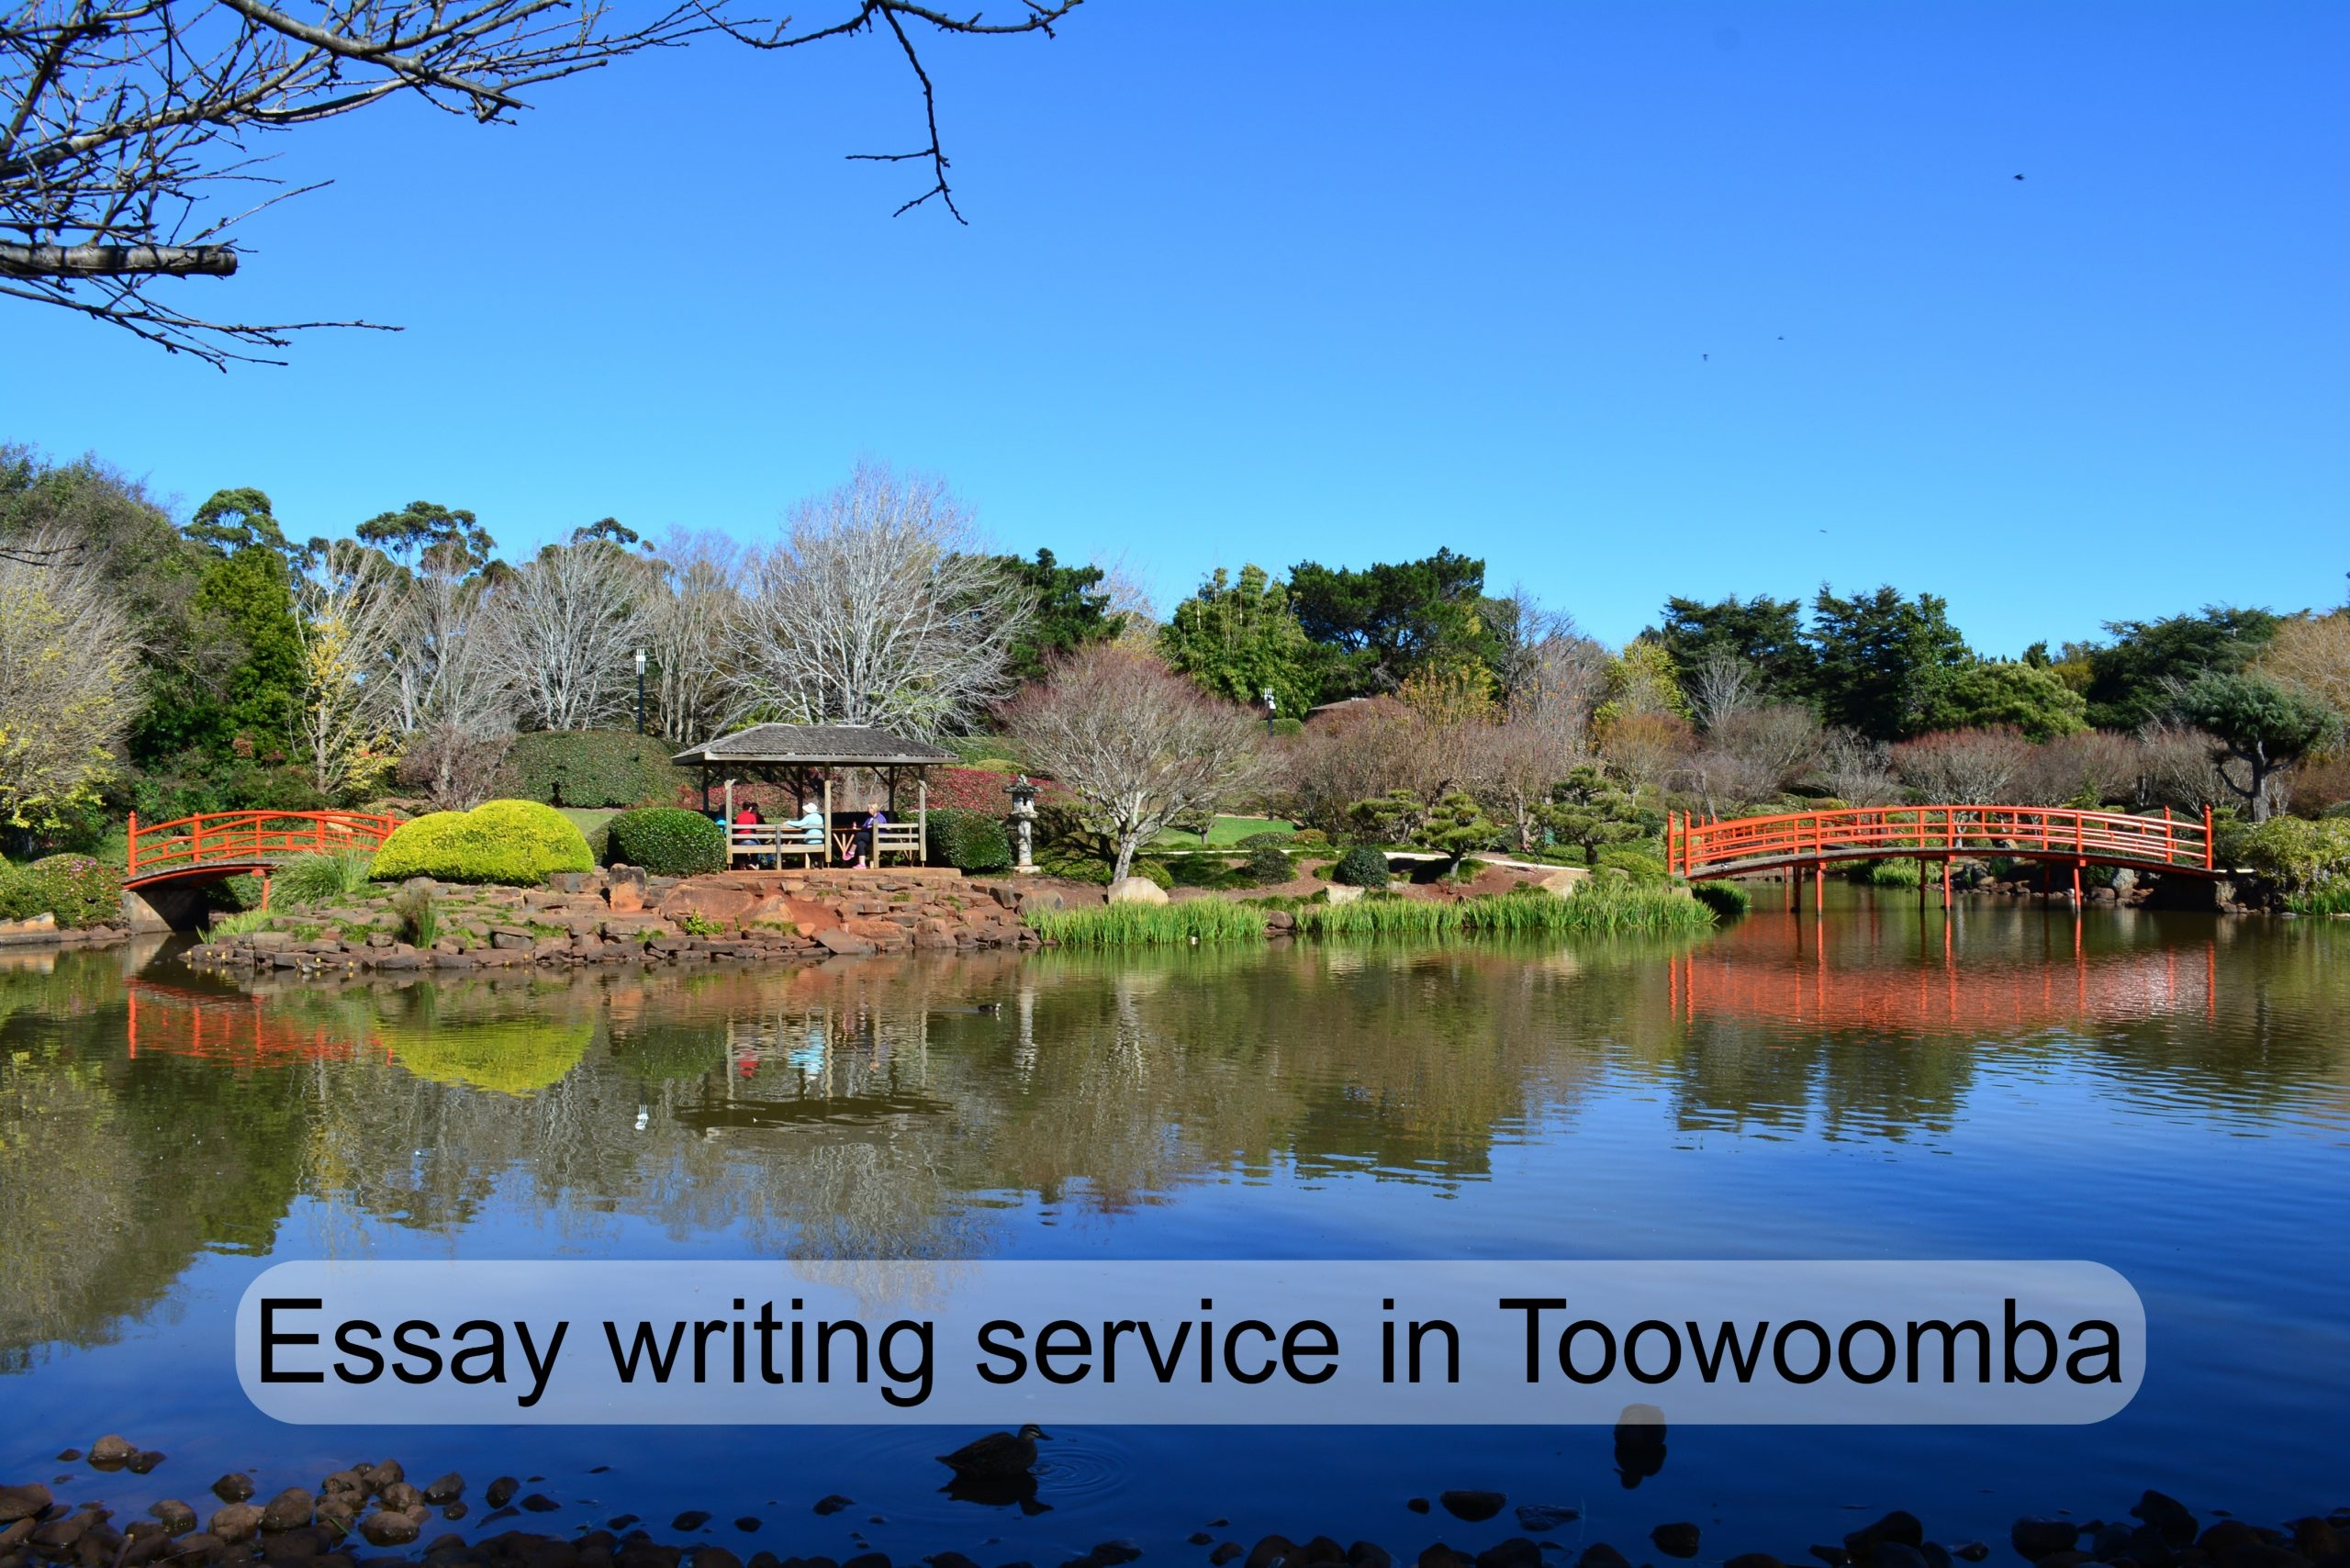 Essay writing service in Toowoomba